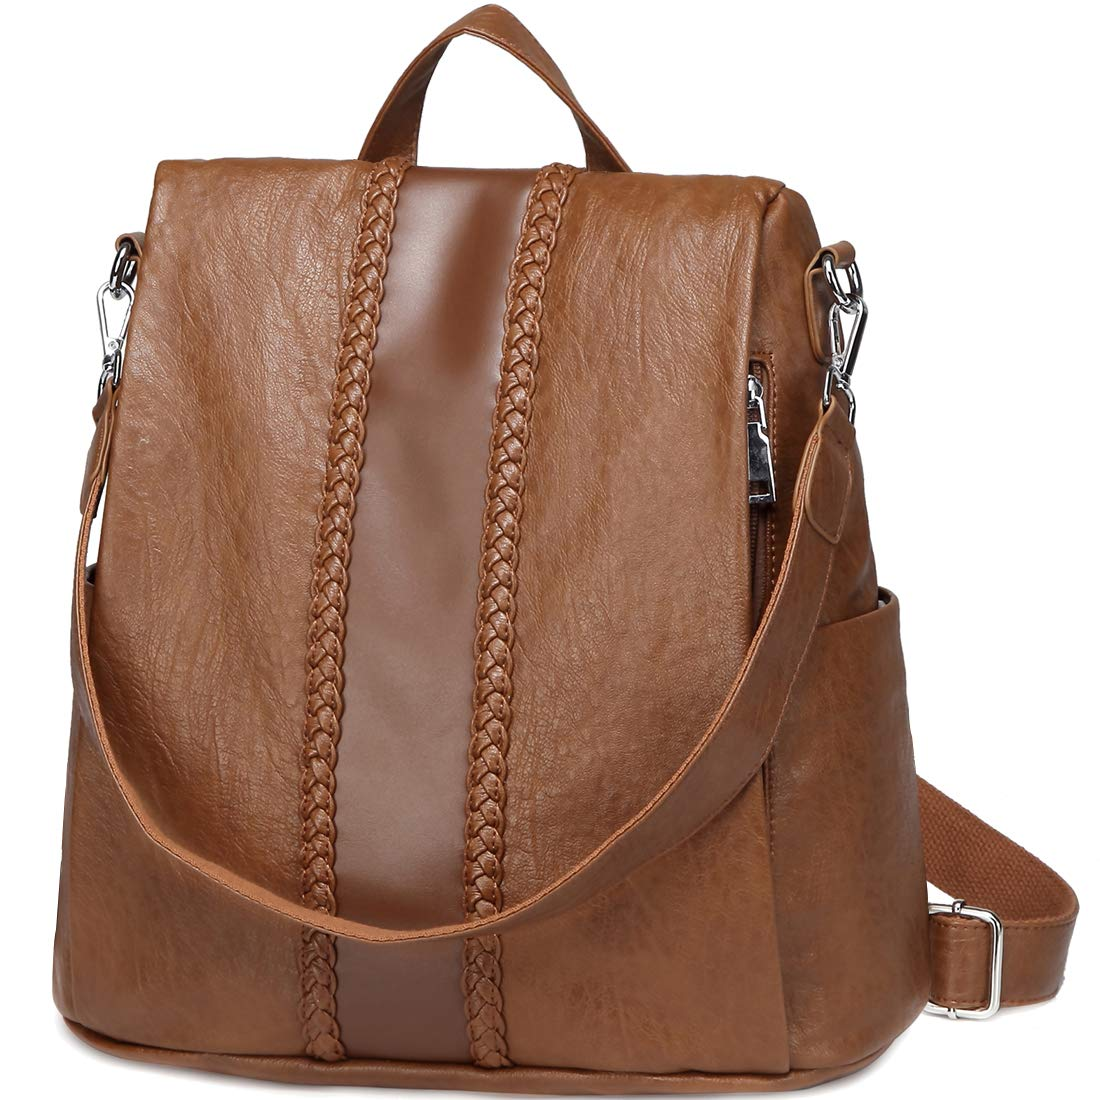 Women Backpack Purse, VASCHY Fashion Faux Leather Anti-theft Backpack for Ladies School Bag with Vintage Weave